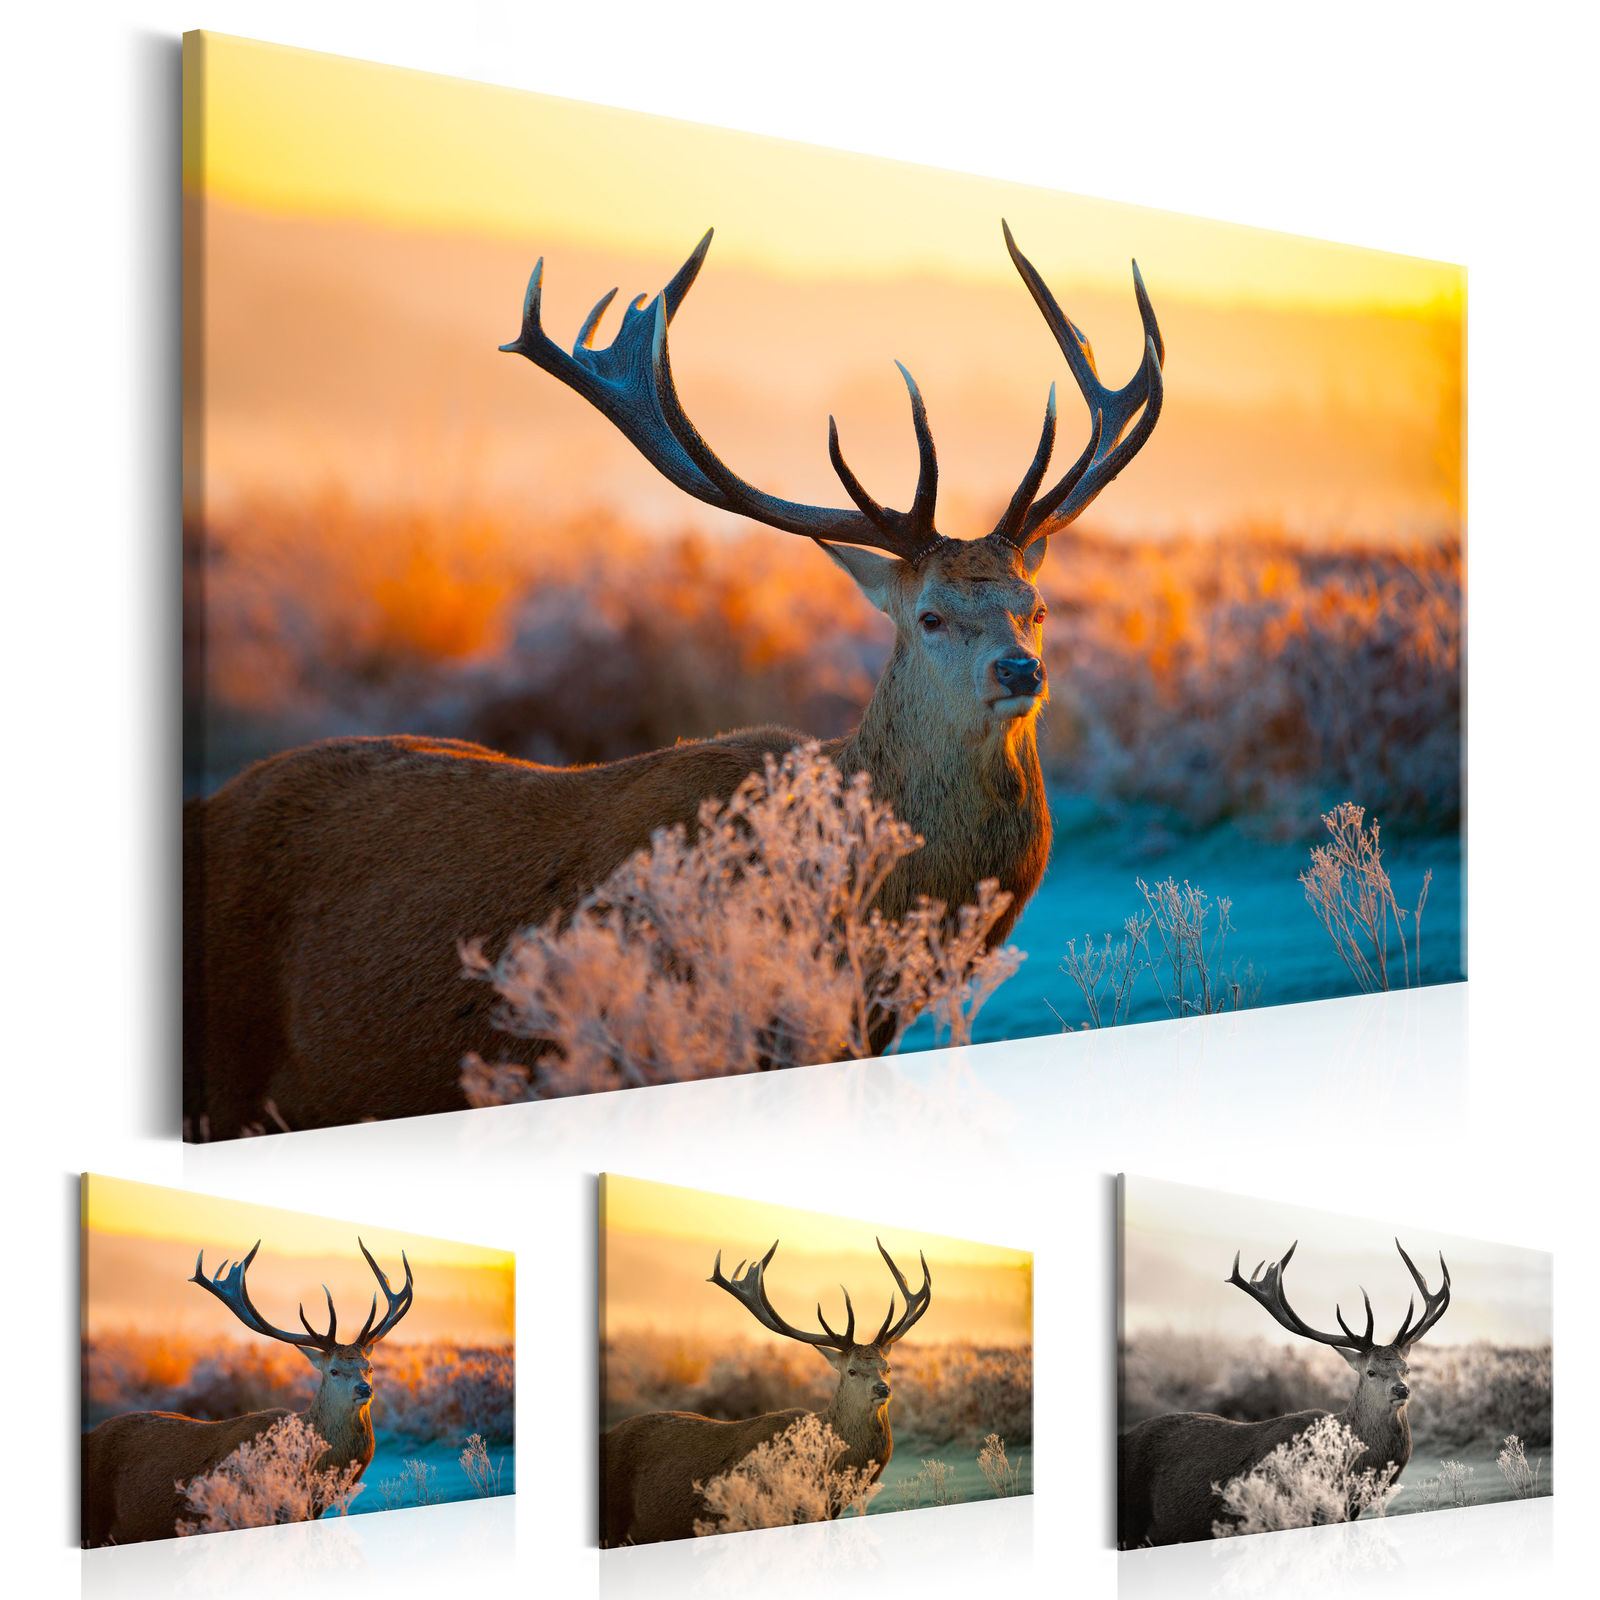 Weirs River of Gold Elk Deer Animal Painting HD Print on Canvas Wall Art Picture